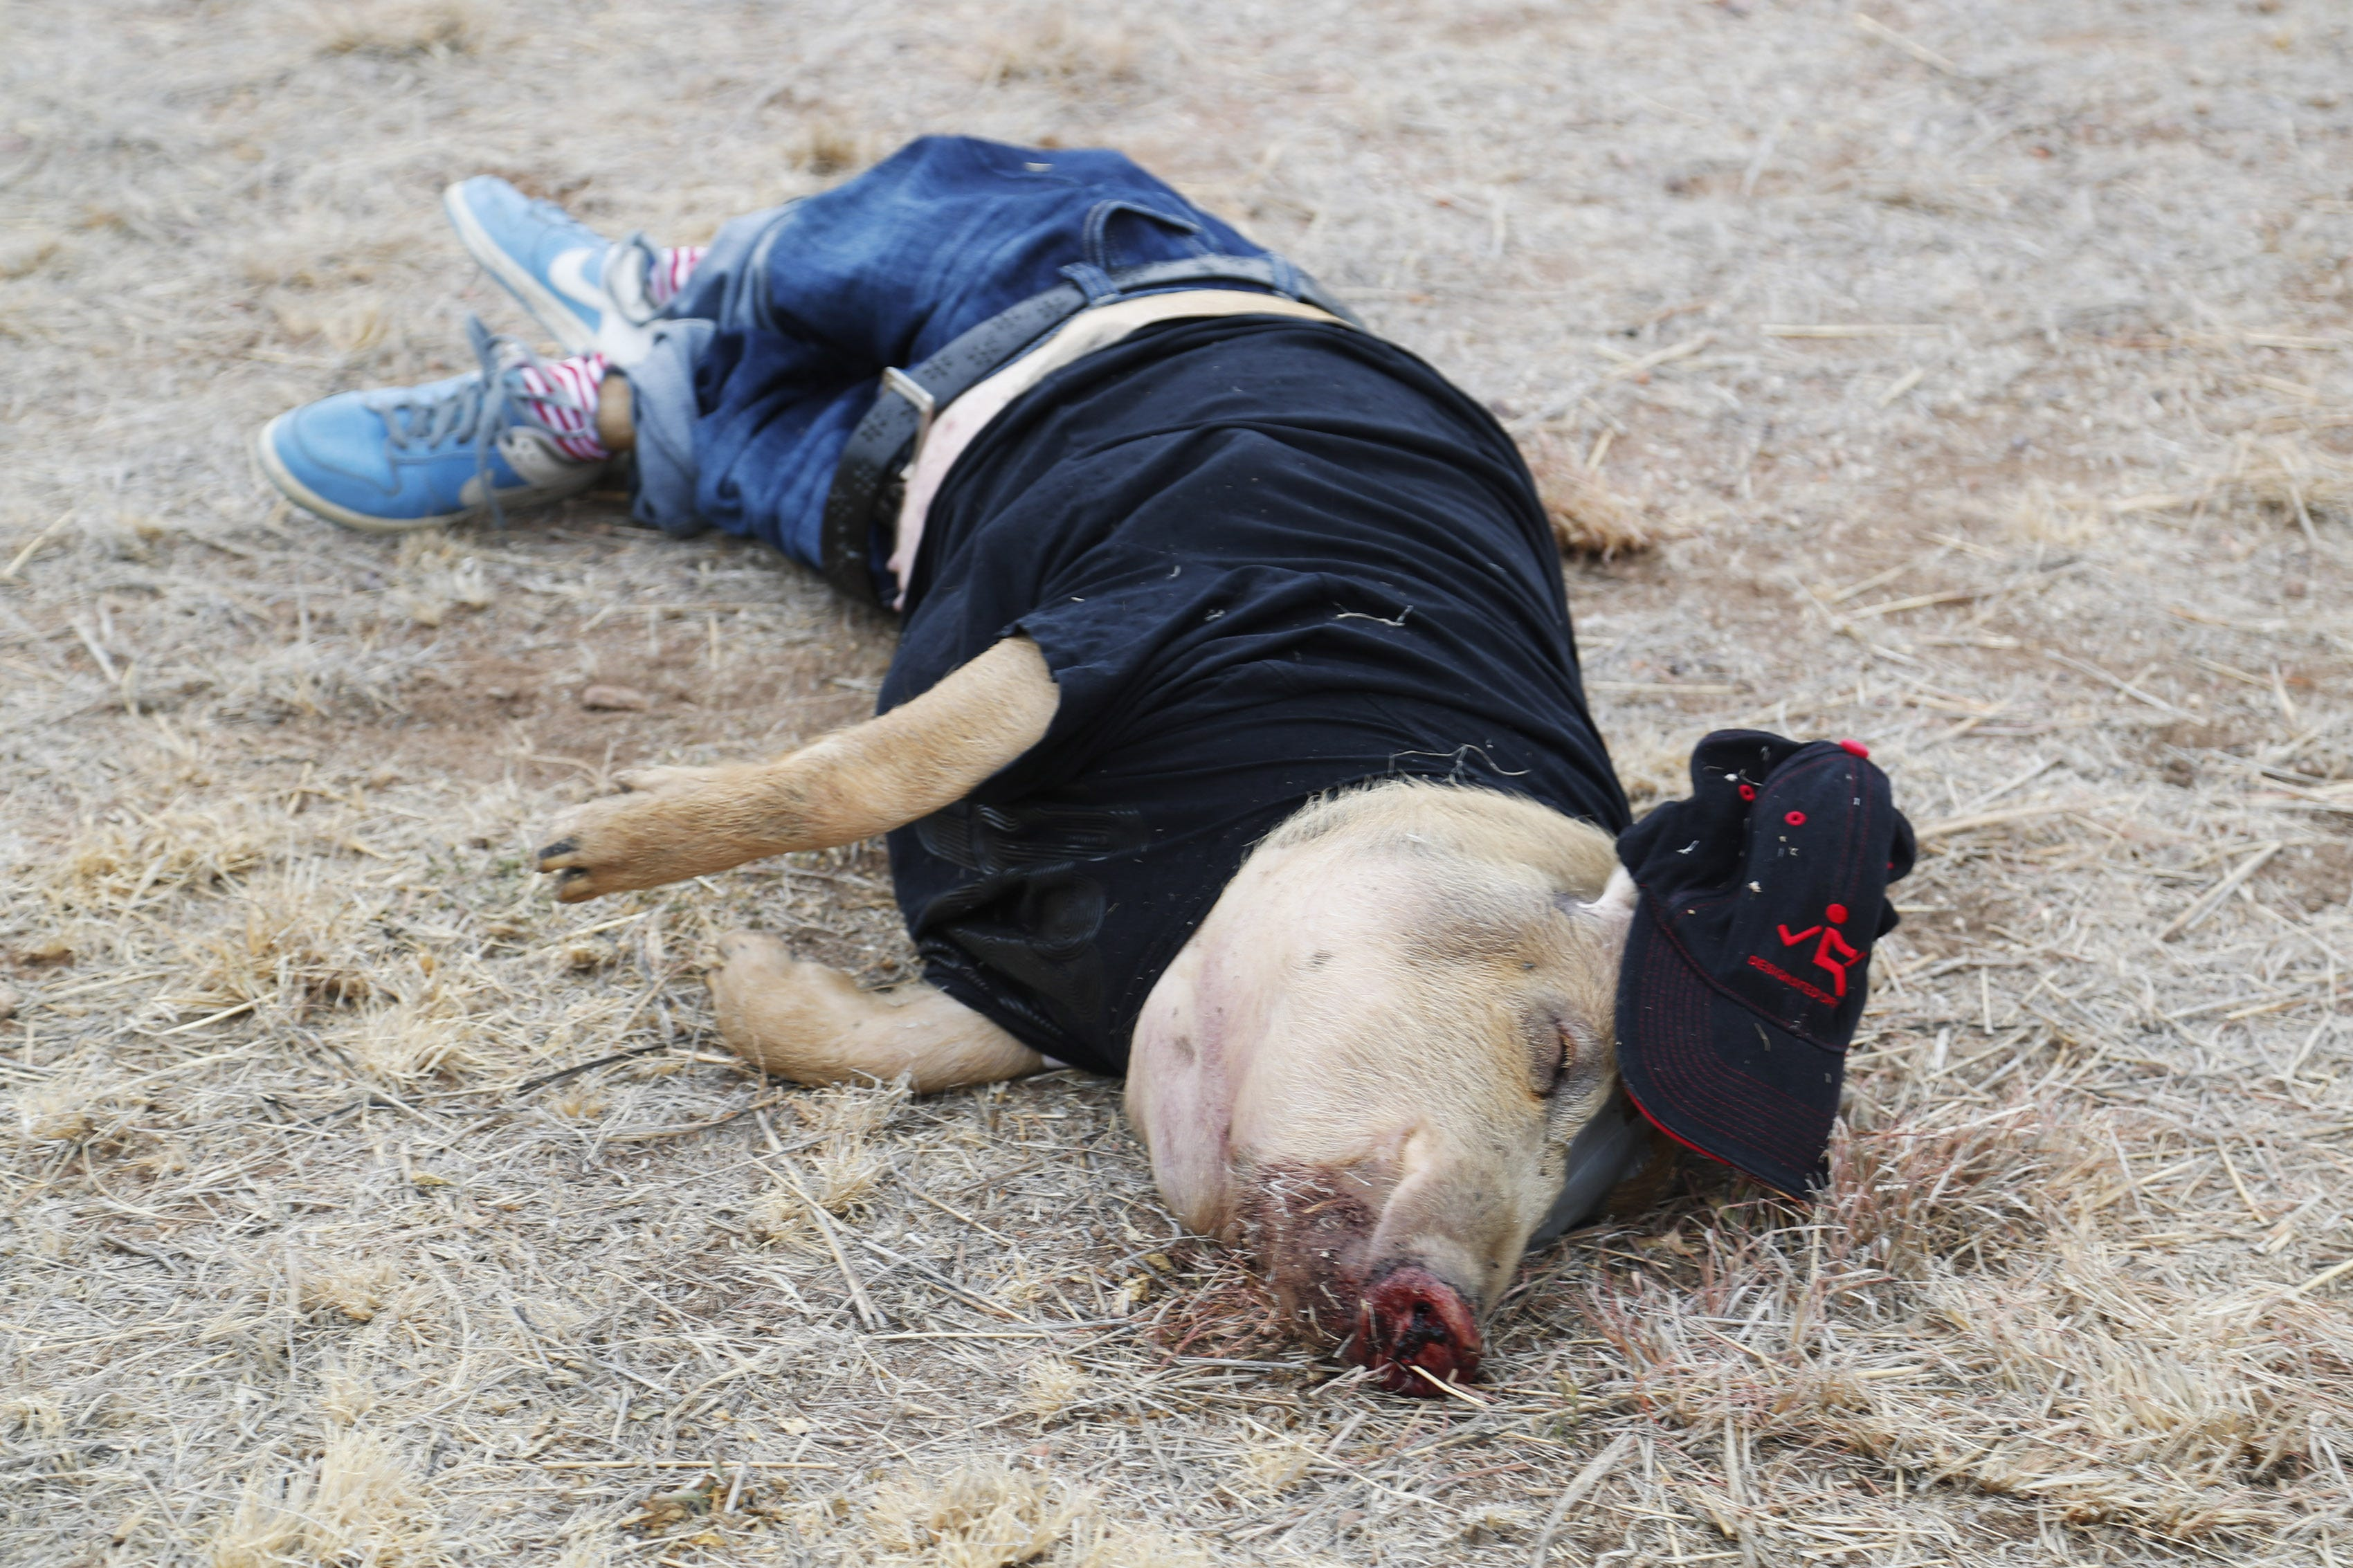 What dead pigs can teach us about missing migrant bodies in the desert